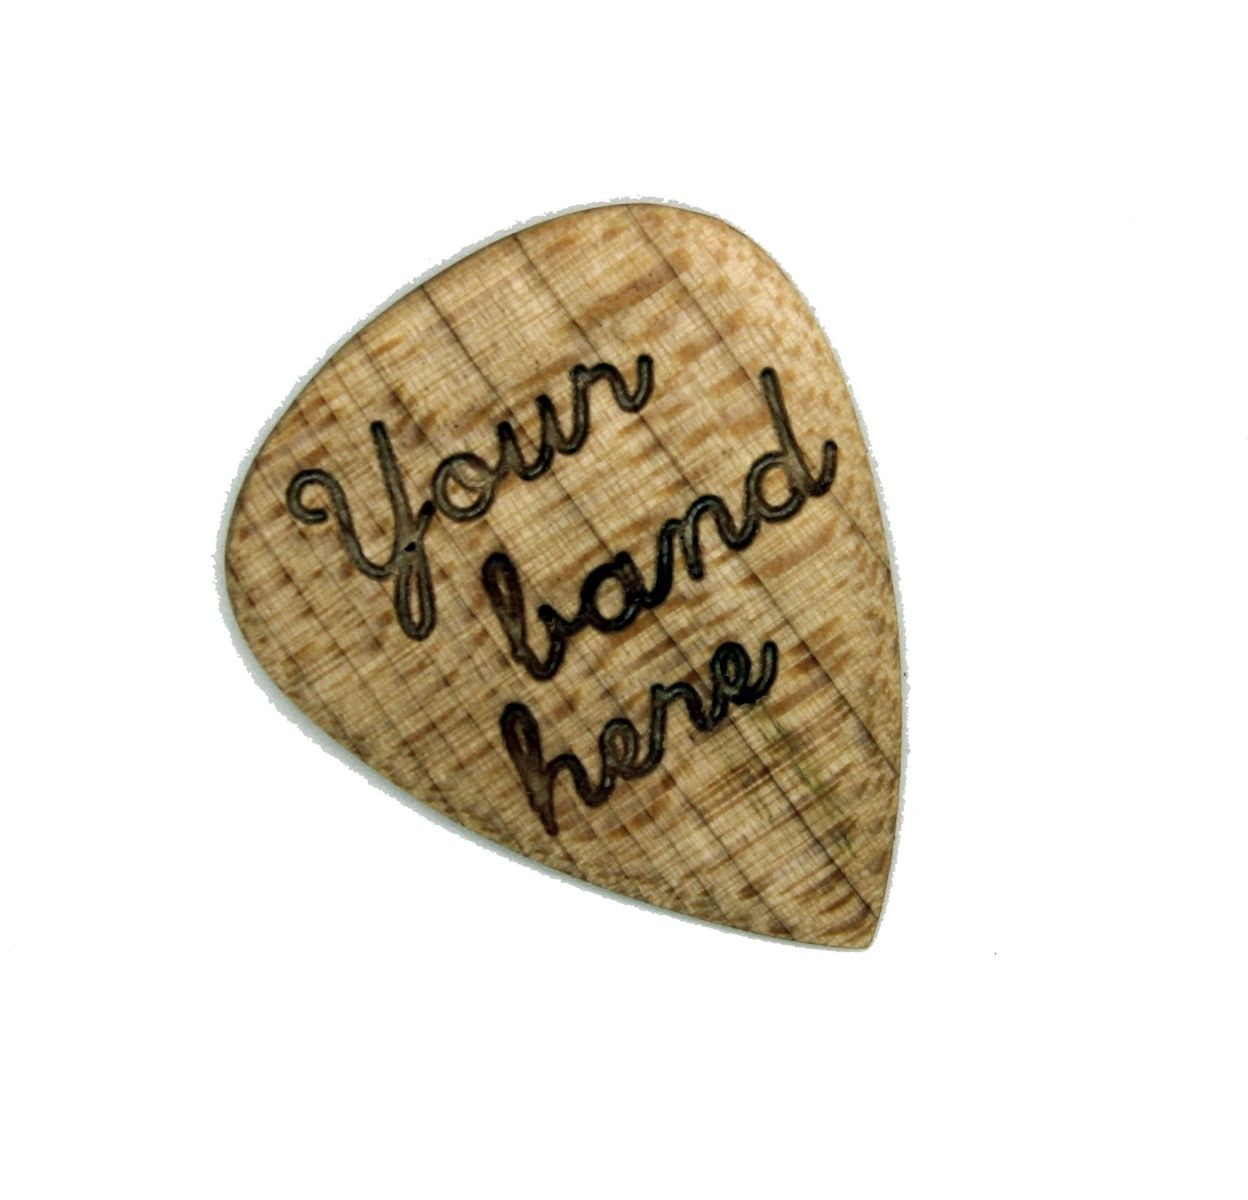 Hand Made Engraved Wood Guitar Picks, Custom, Musician Gift, Wooden ...